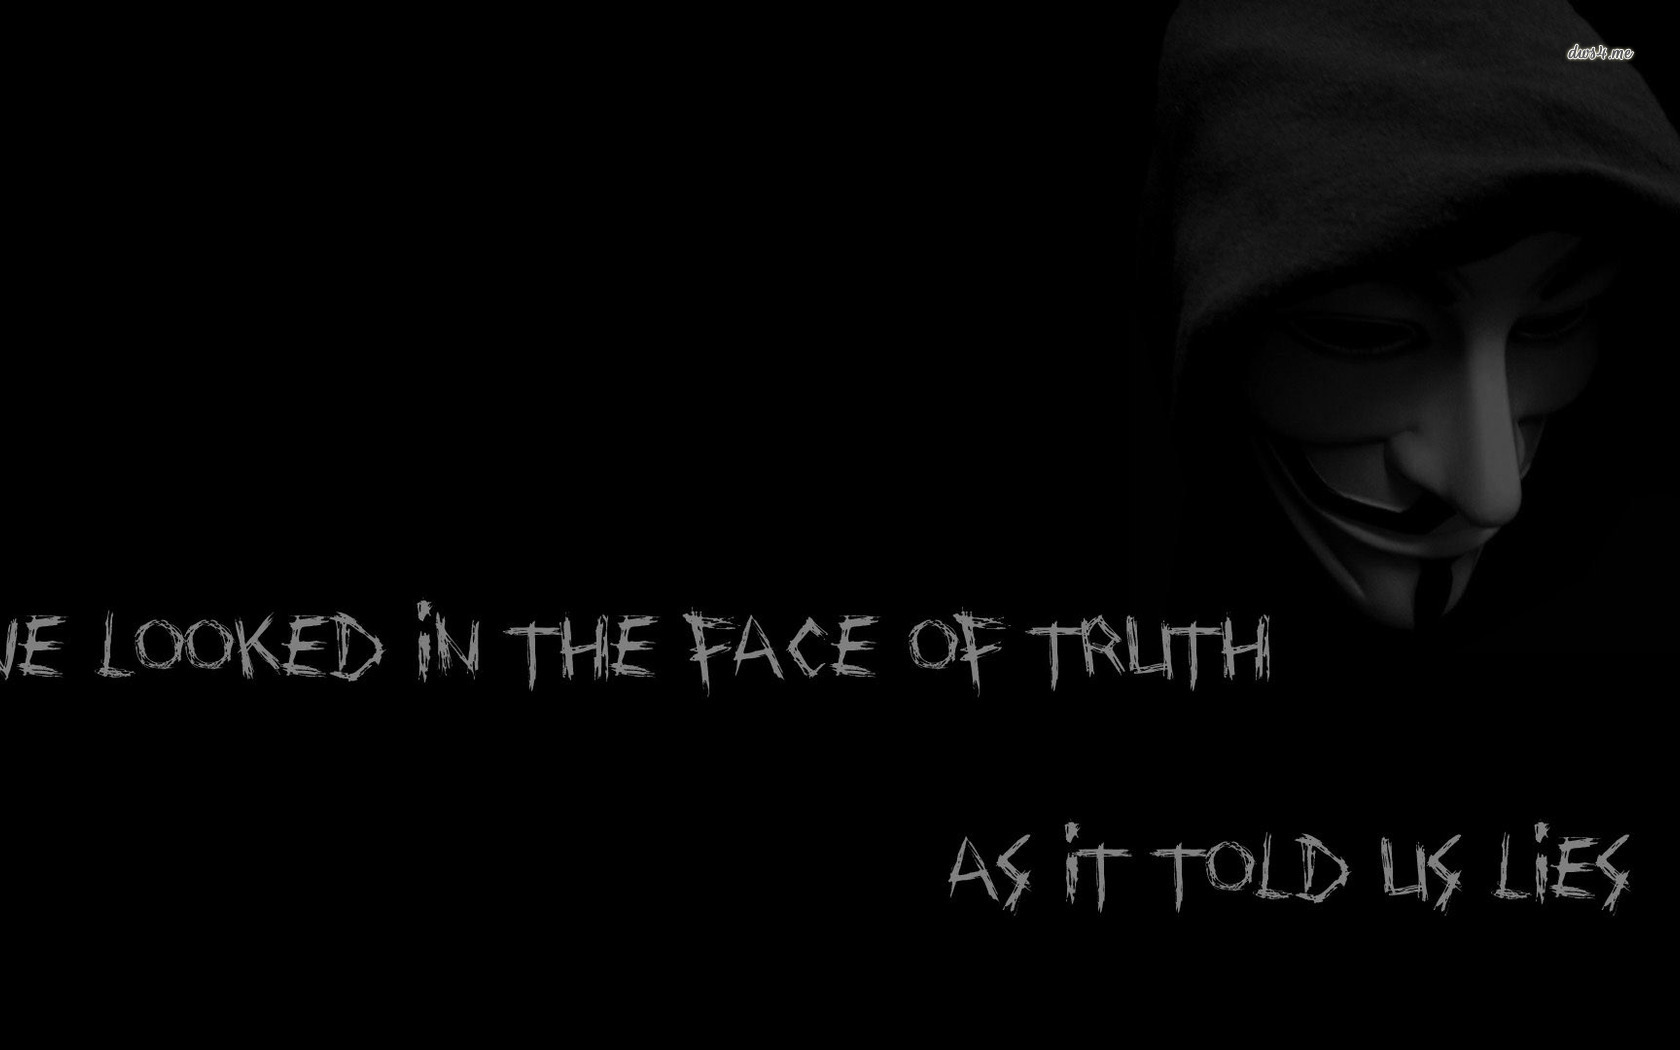 anonymous quote ldquo there is - photo #16